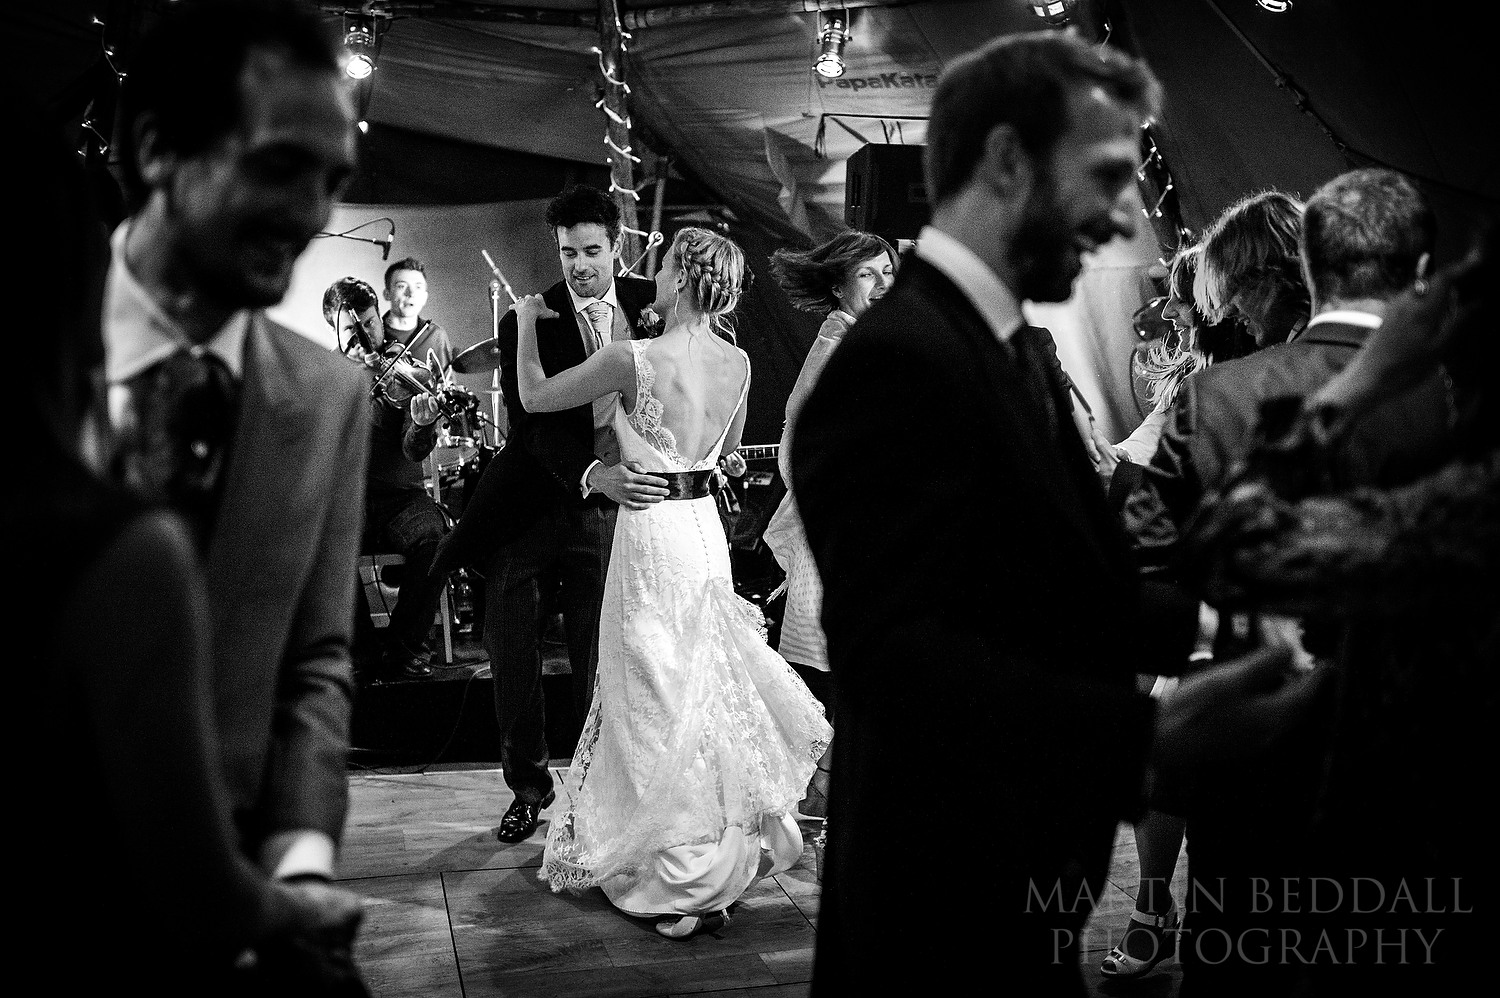 Bride and groom dance in the wedding tipi